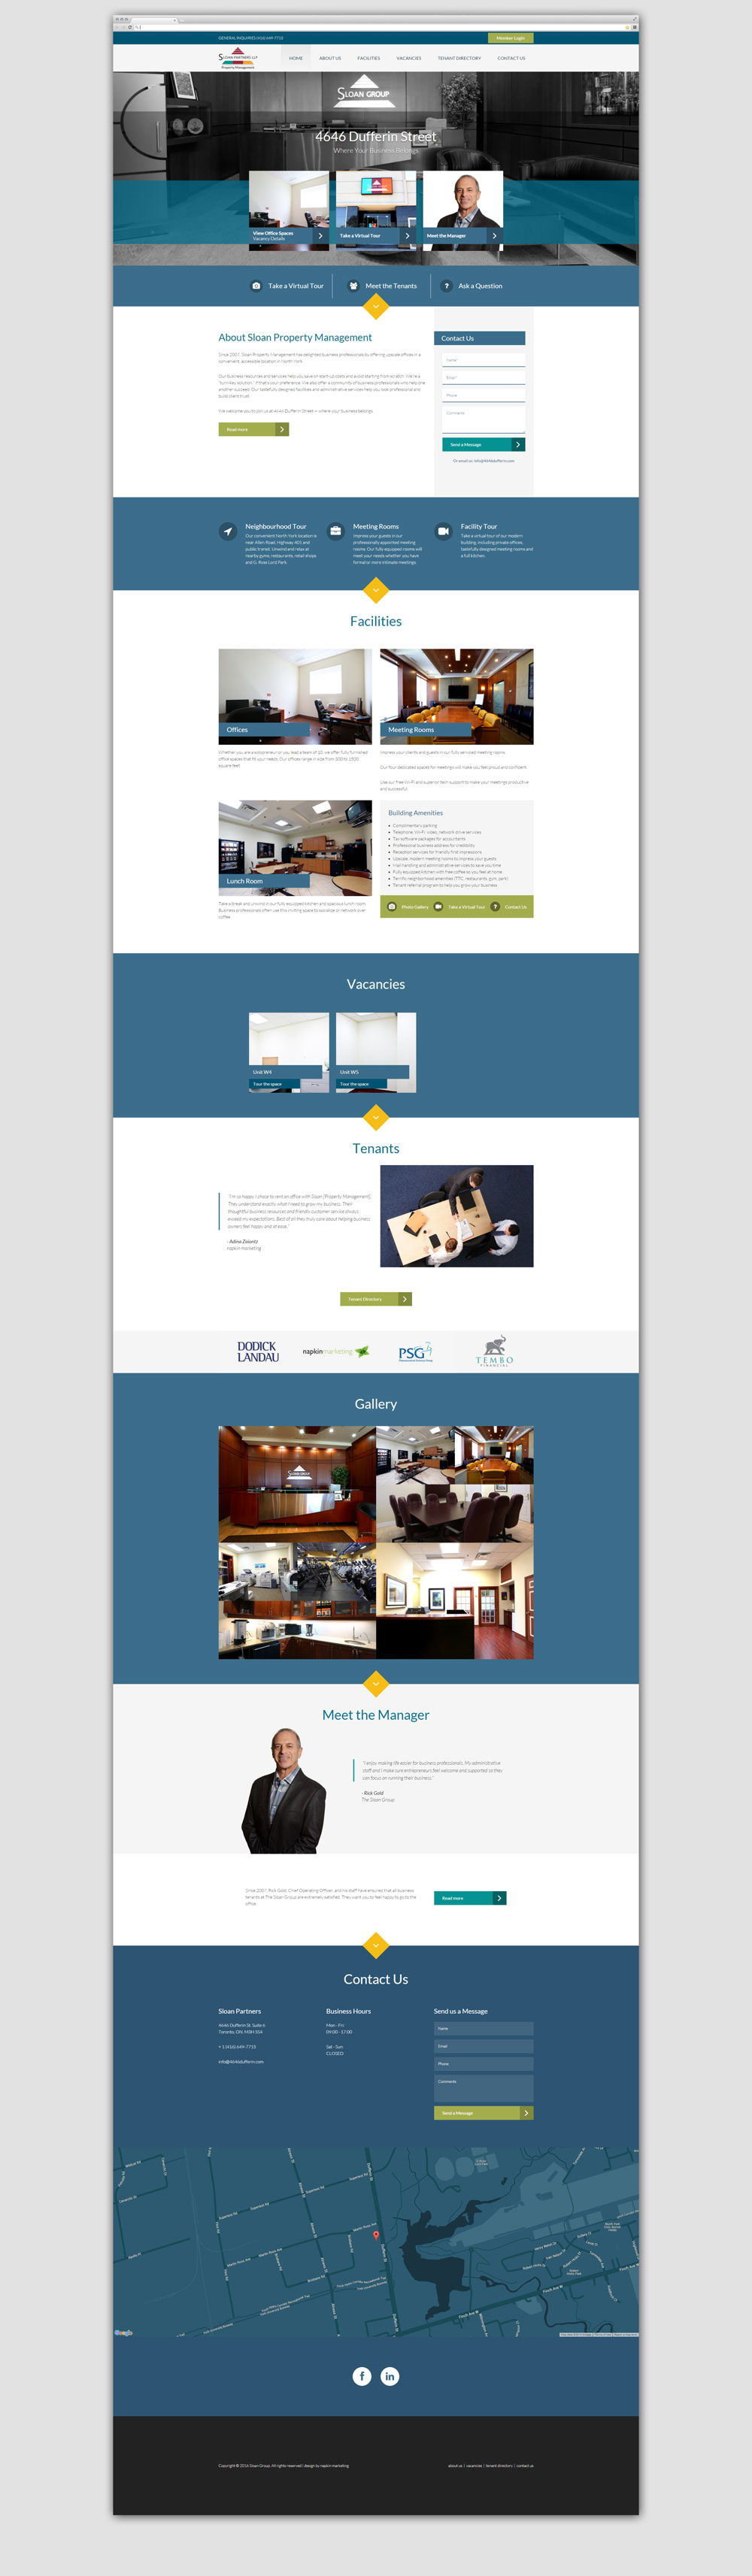 spmhomepage